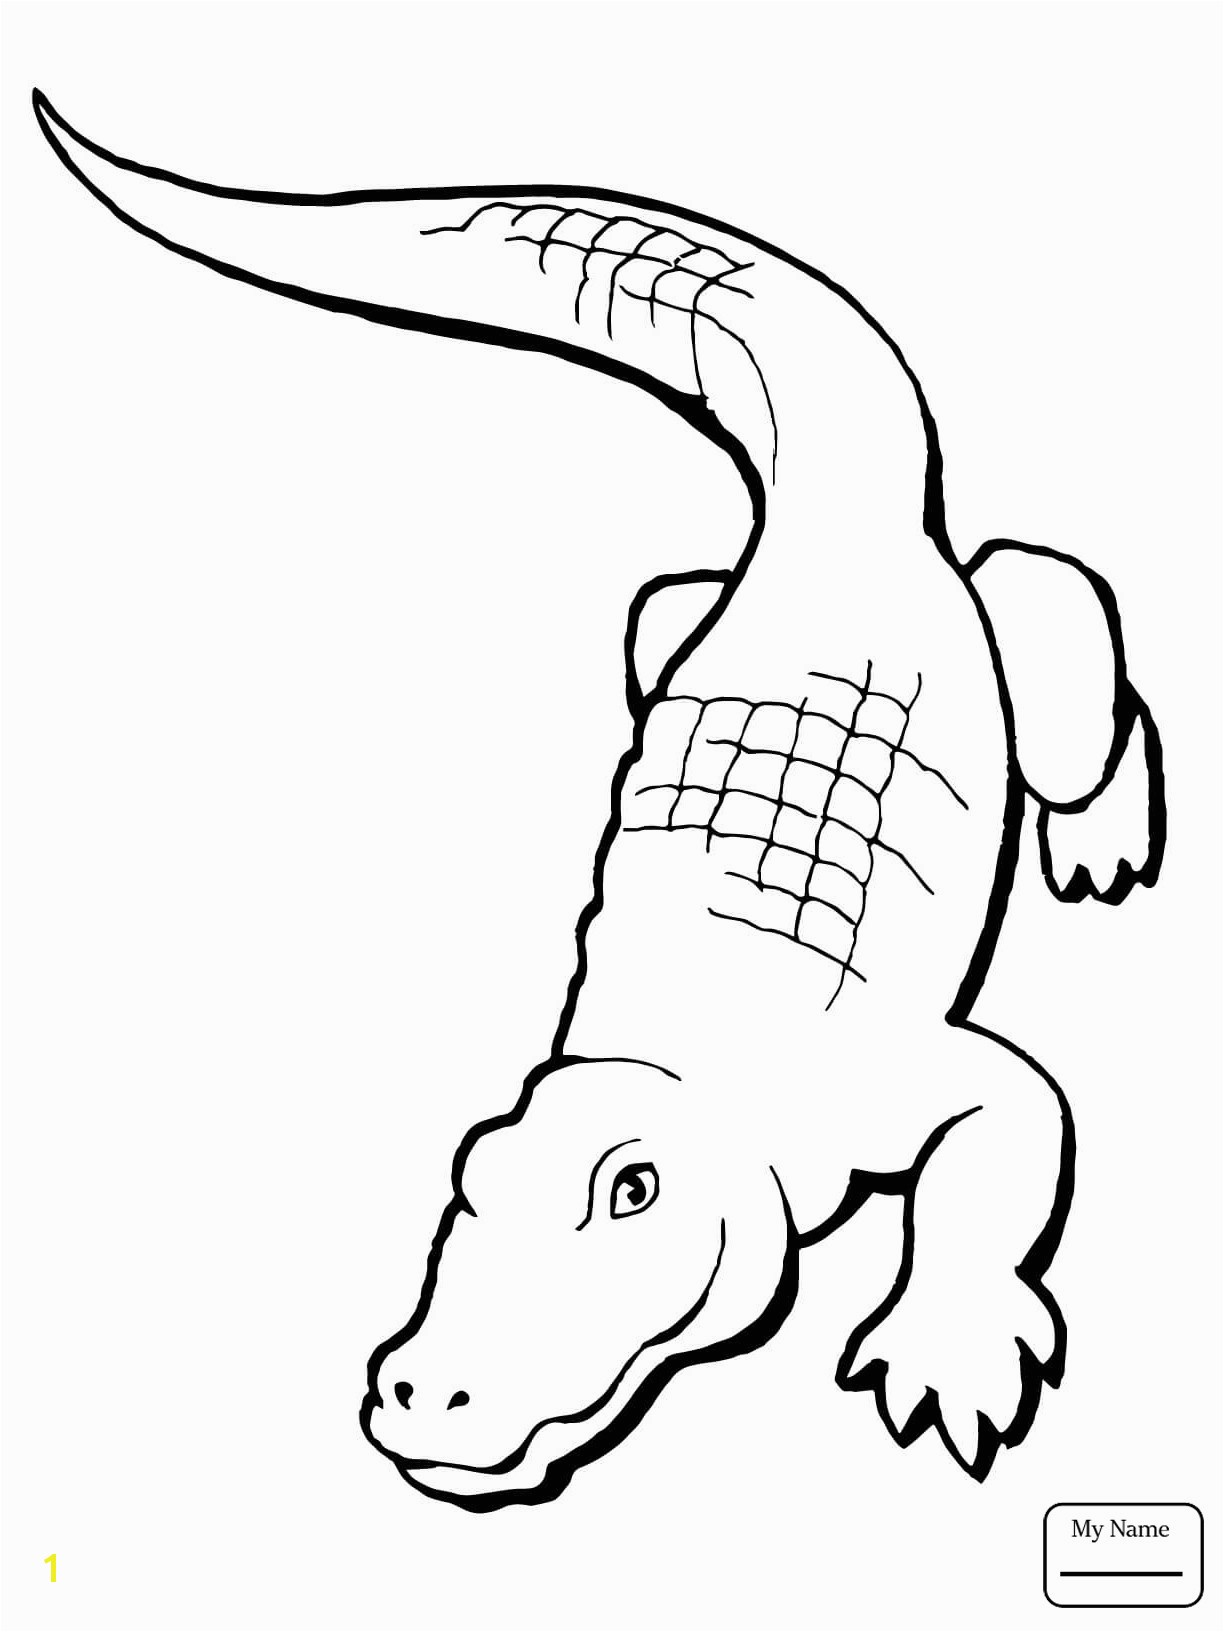 American Alligator Coloring Page Lovely Alligator Drawing Step by Step at Getdrawings American Alligator Coloring